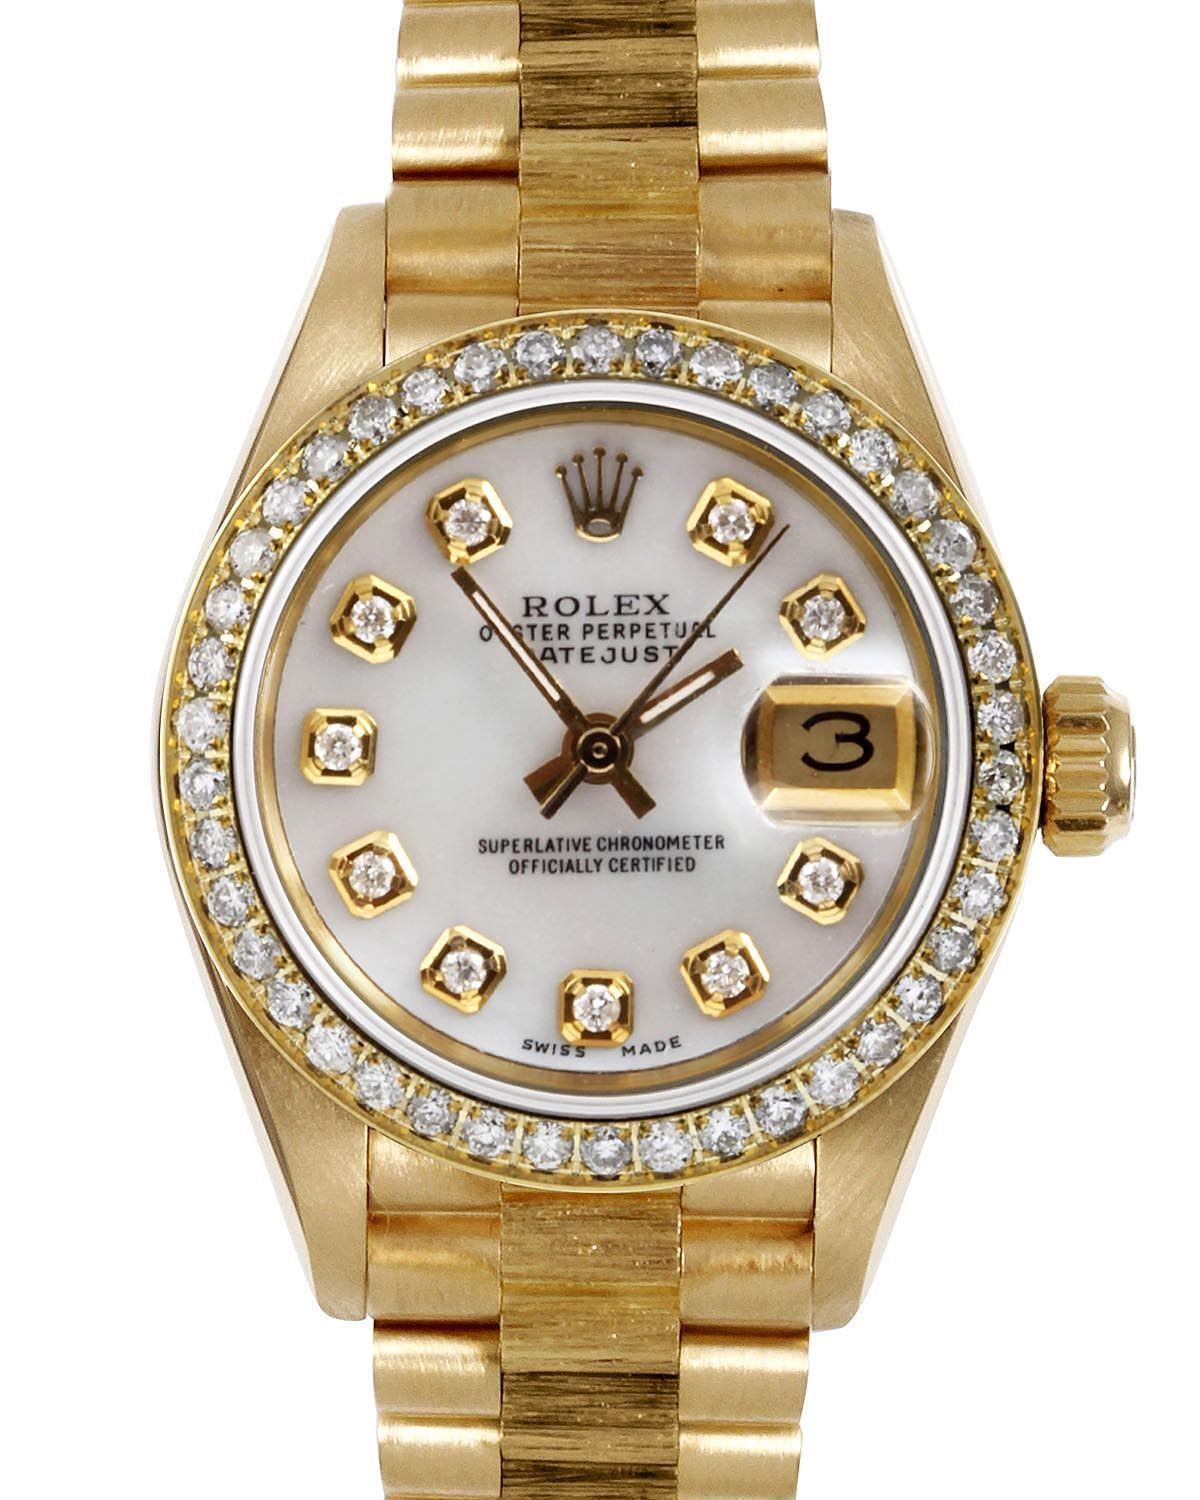 rolex watches authenticity rolex watches and